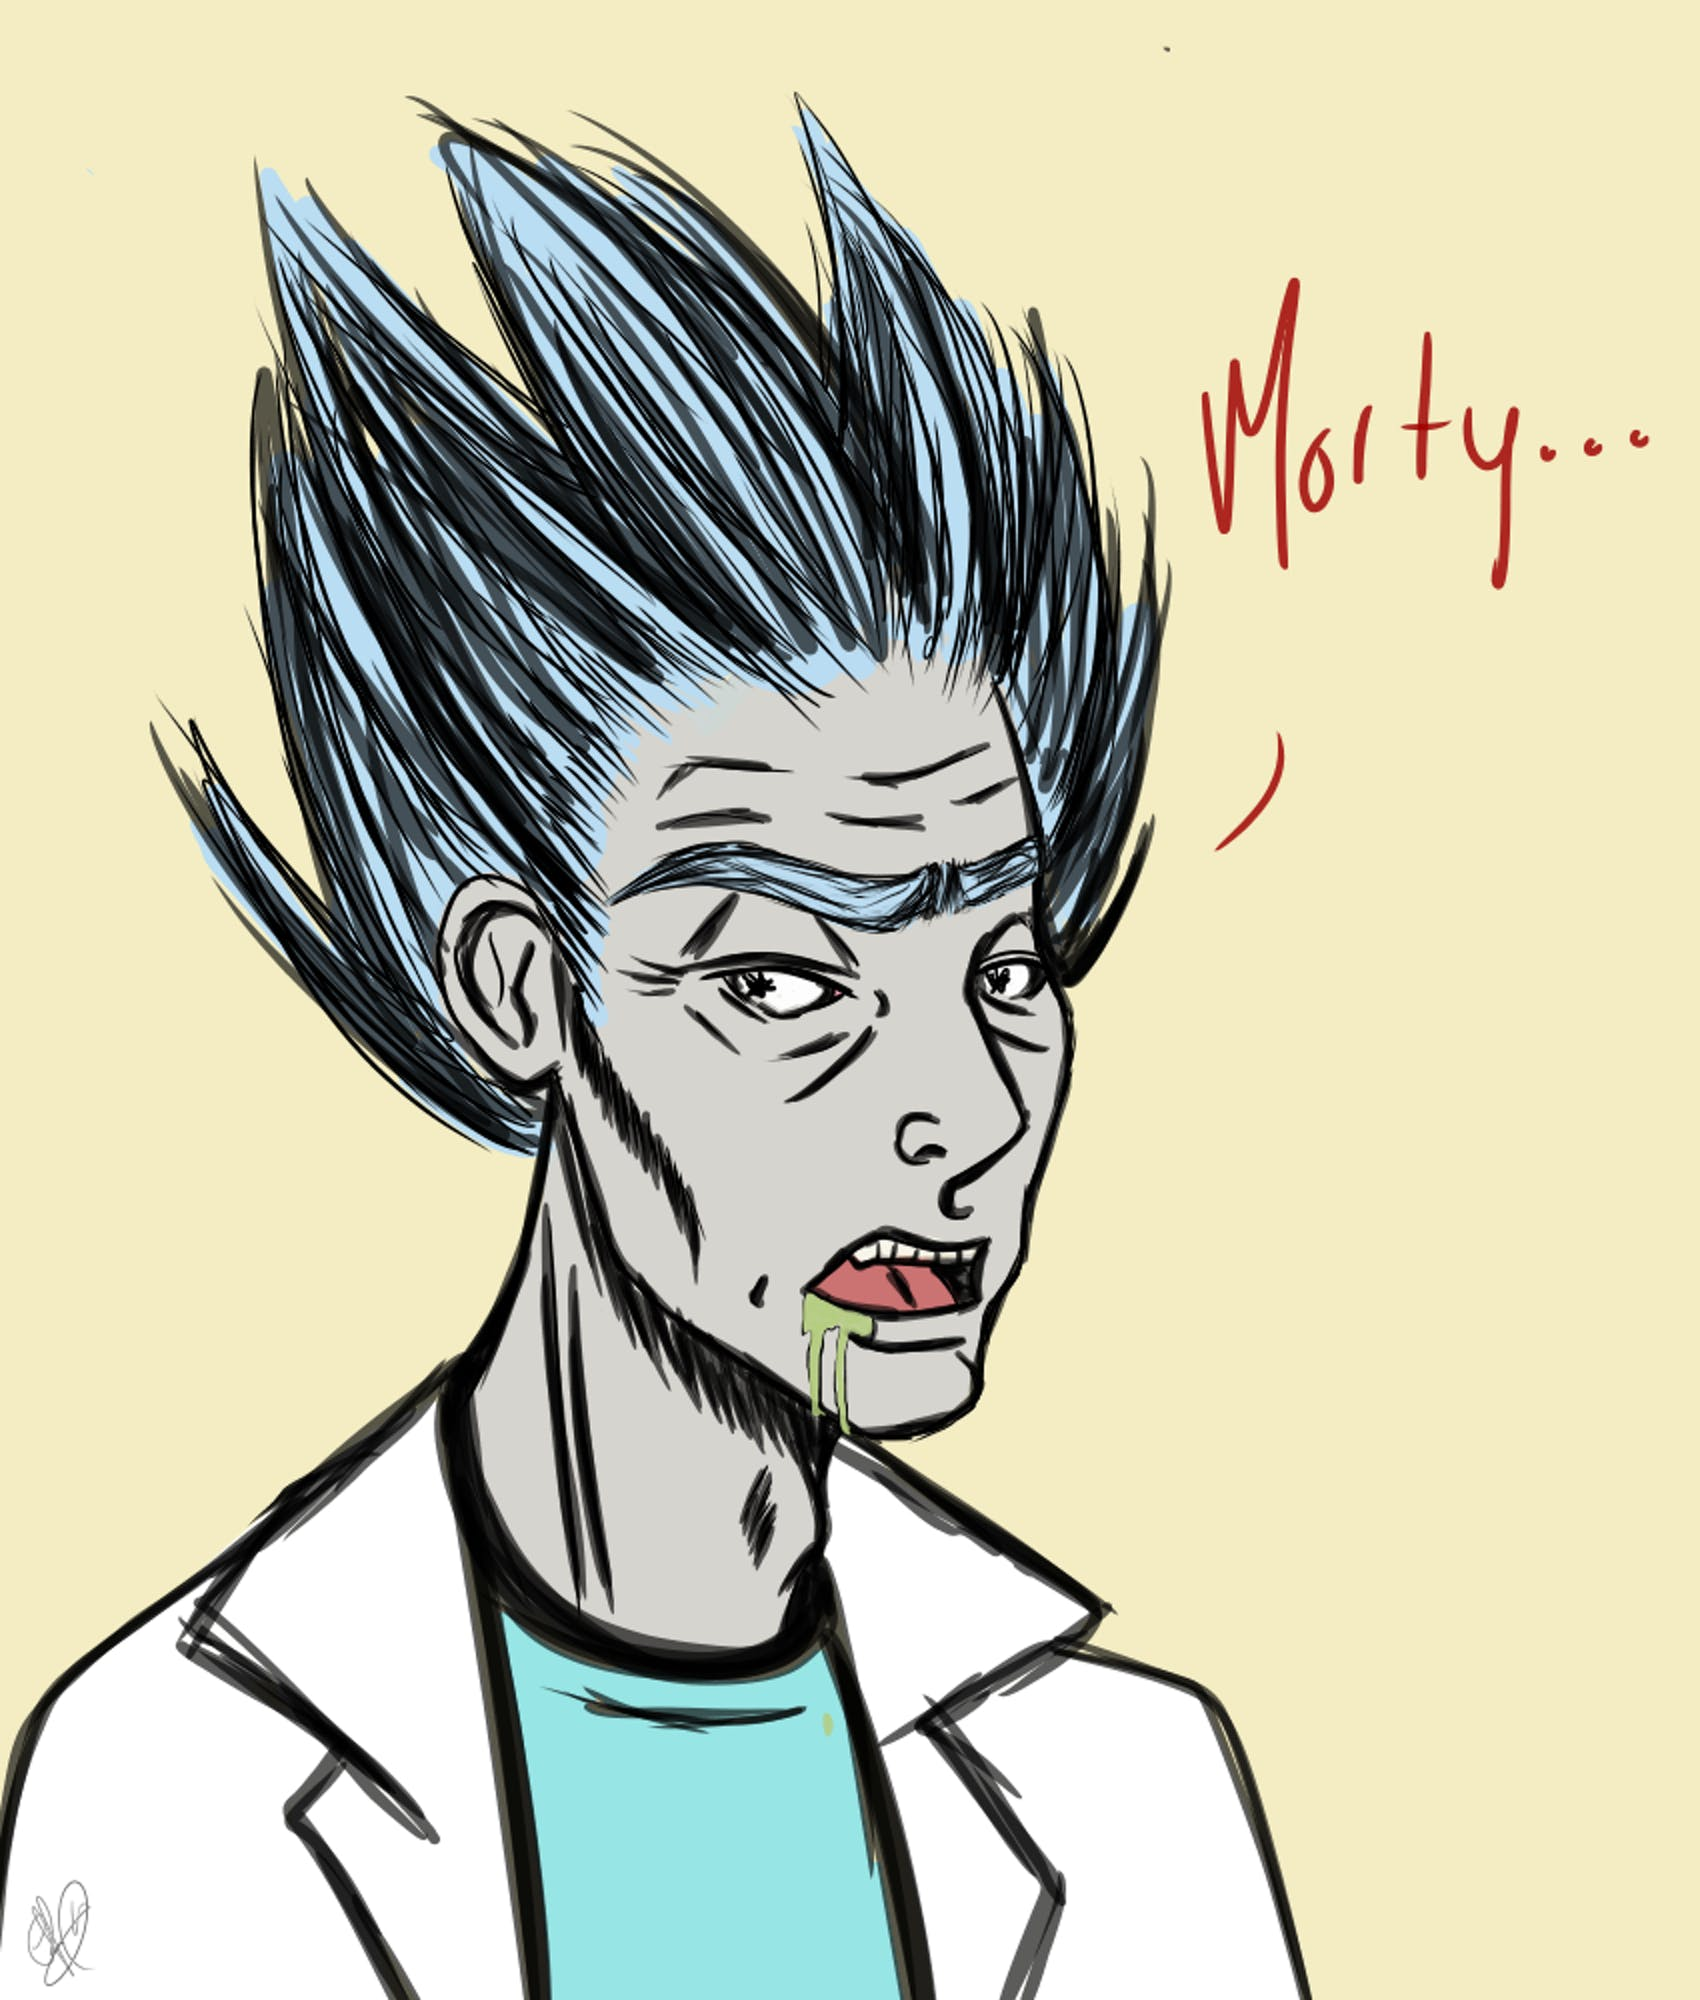 Why Do So Many 'Rick and Morty' Fans Want to Bone Rick